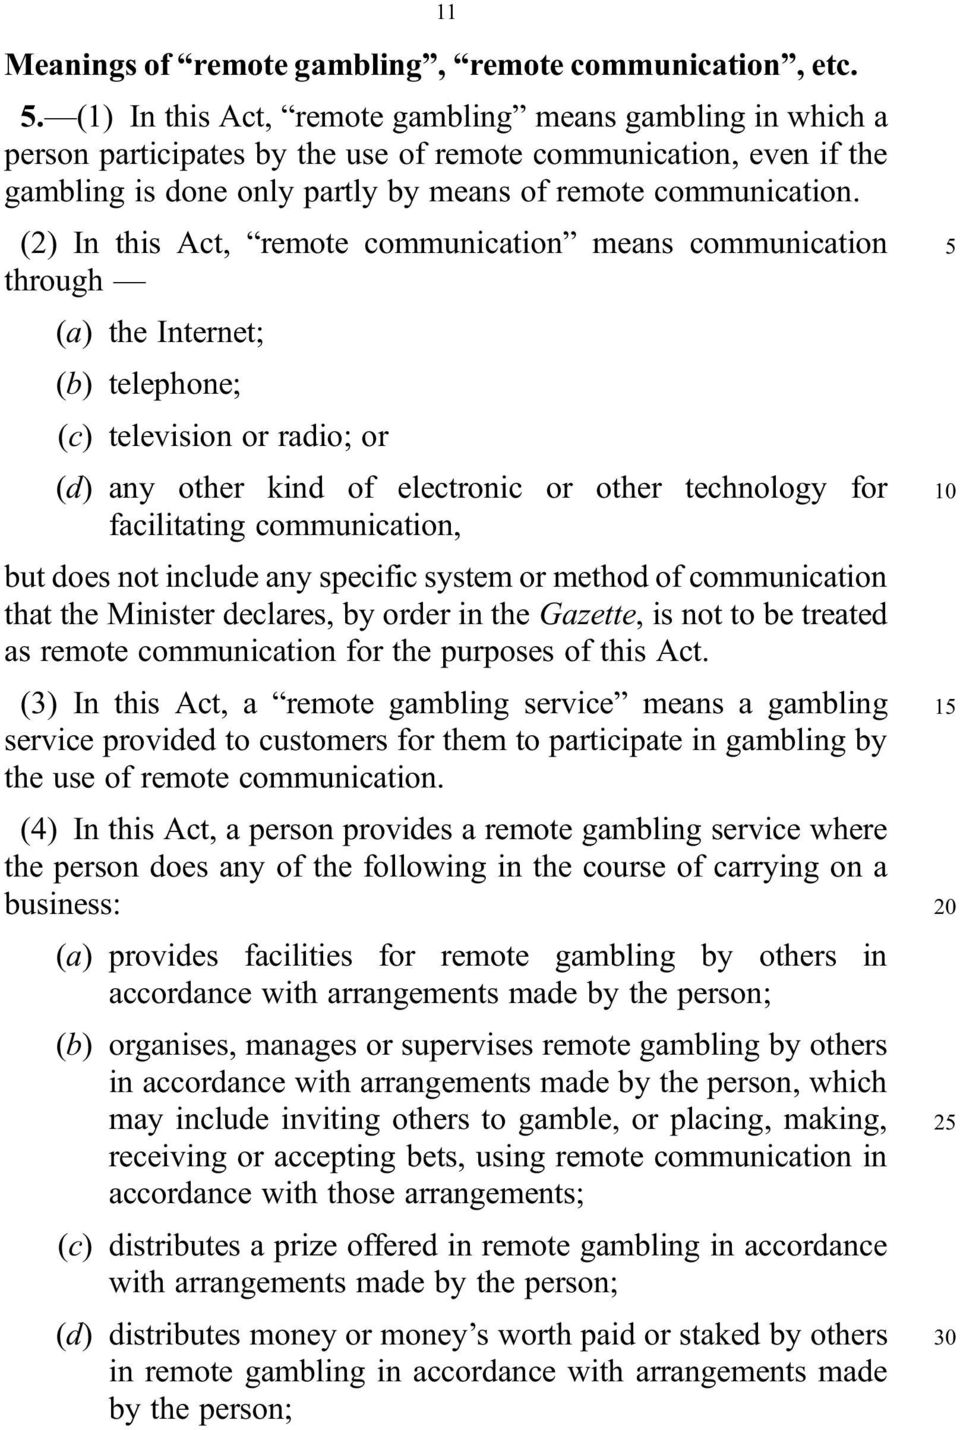 (2) In this Act, remote communication means communication through (a) the Internet; (b) telephone; (c) television or radio; or (d) any other kind of electronic or other technology for facilitating